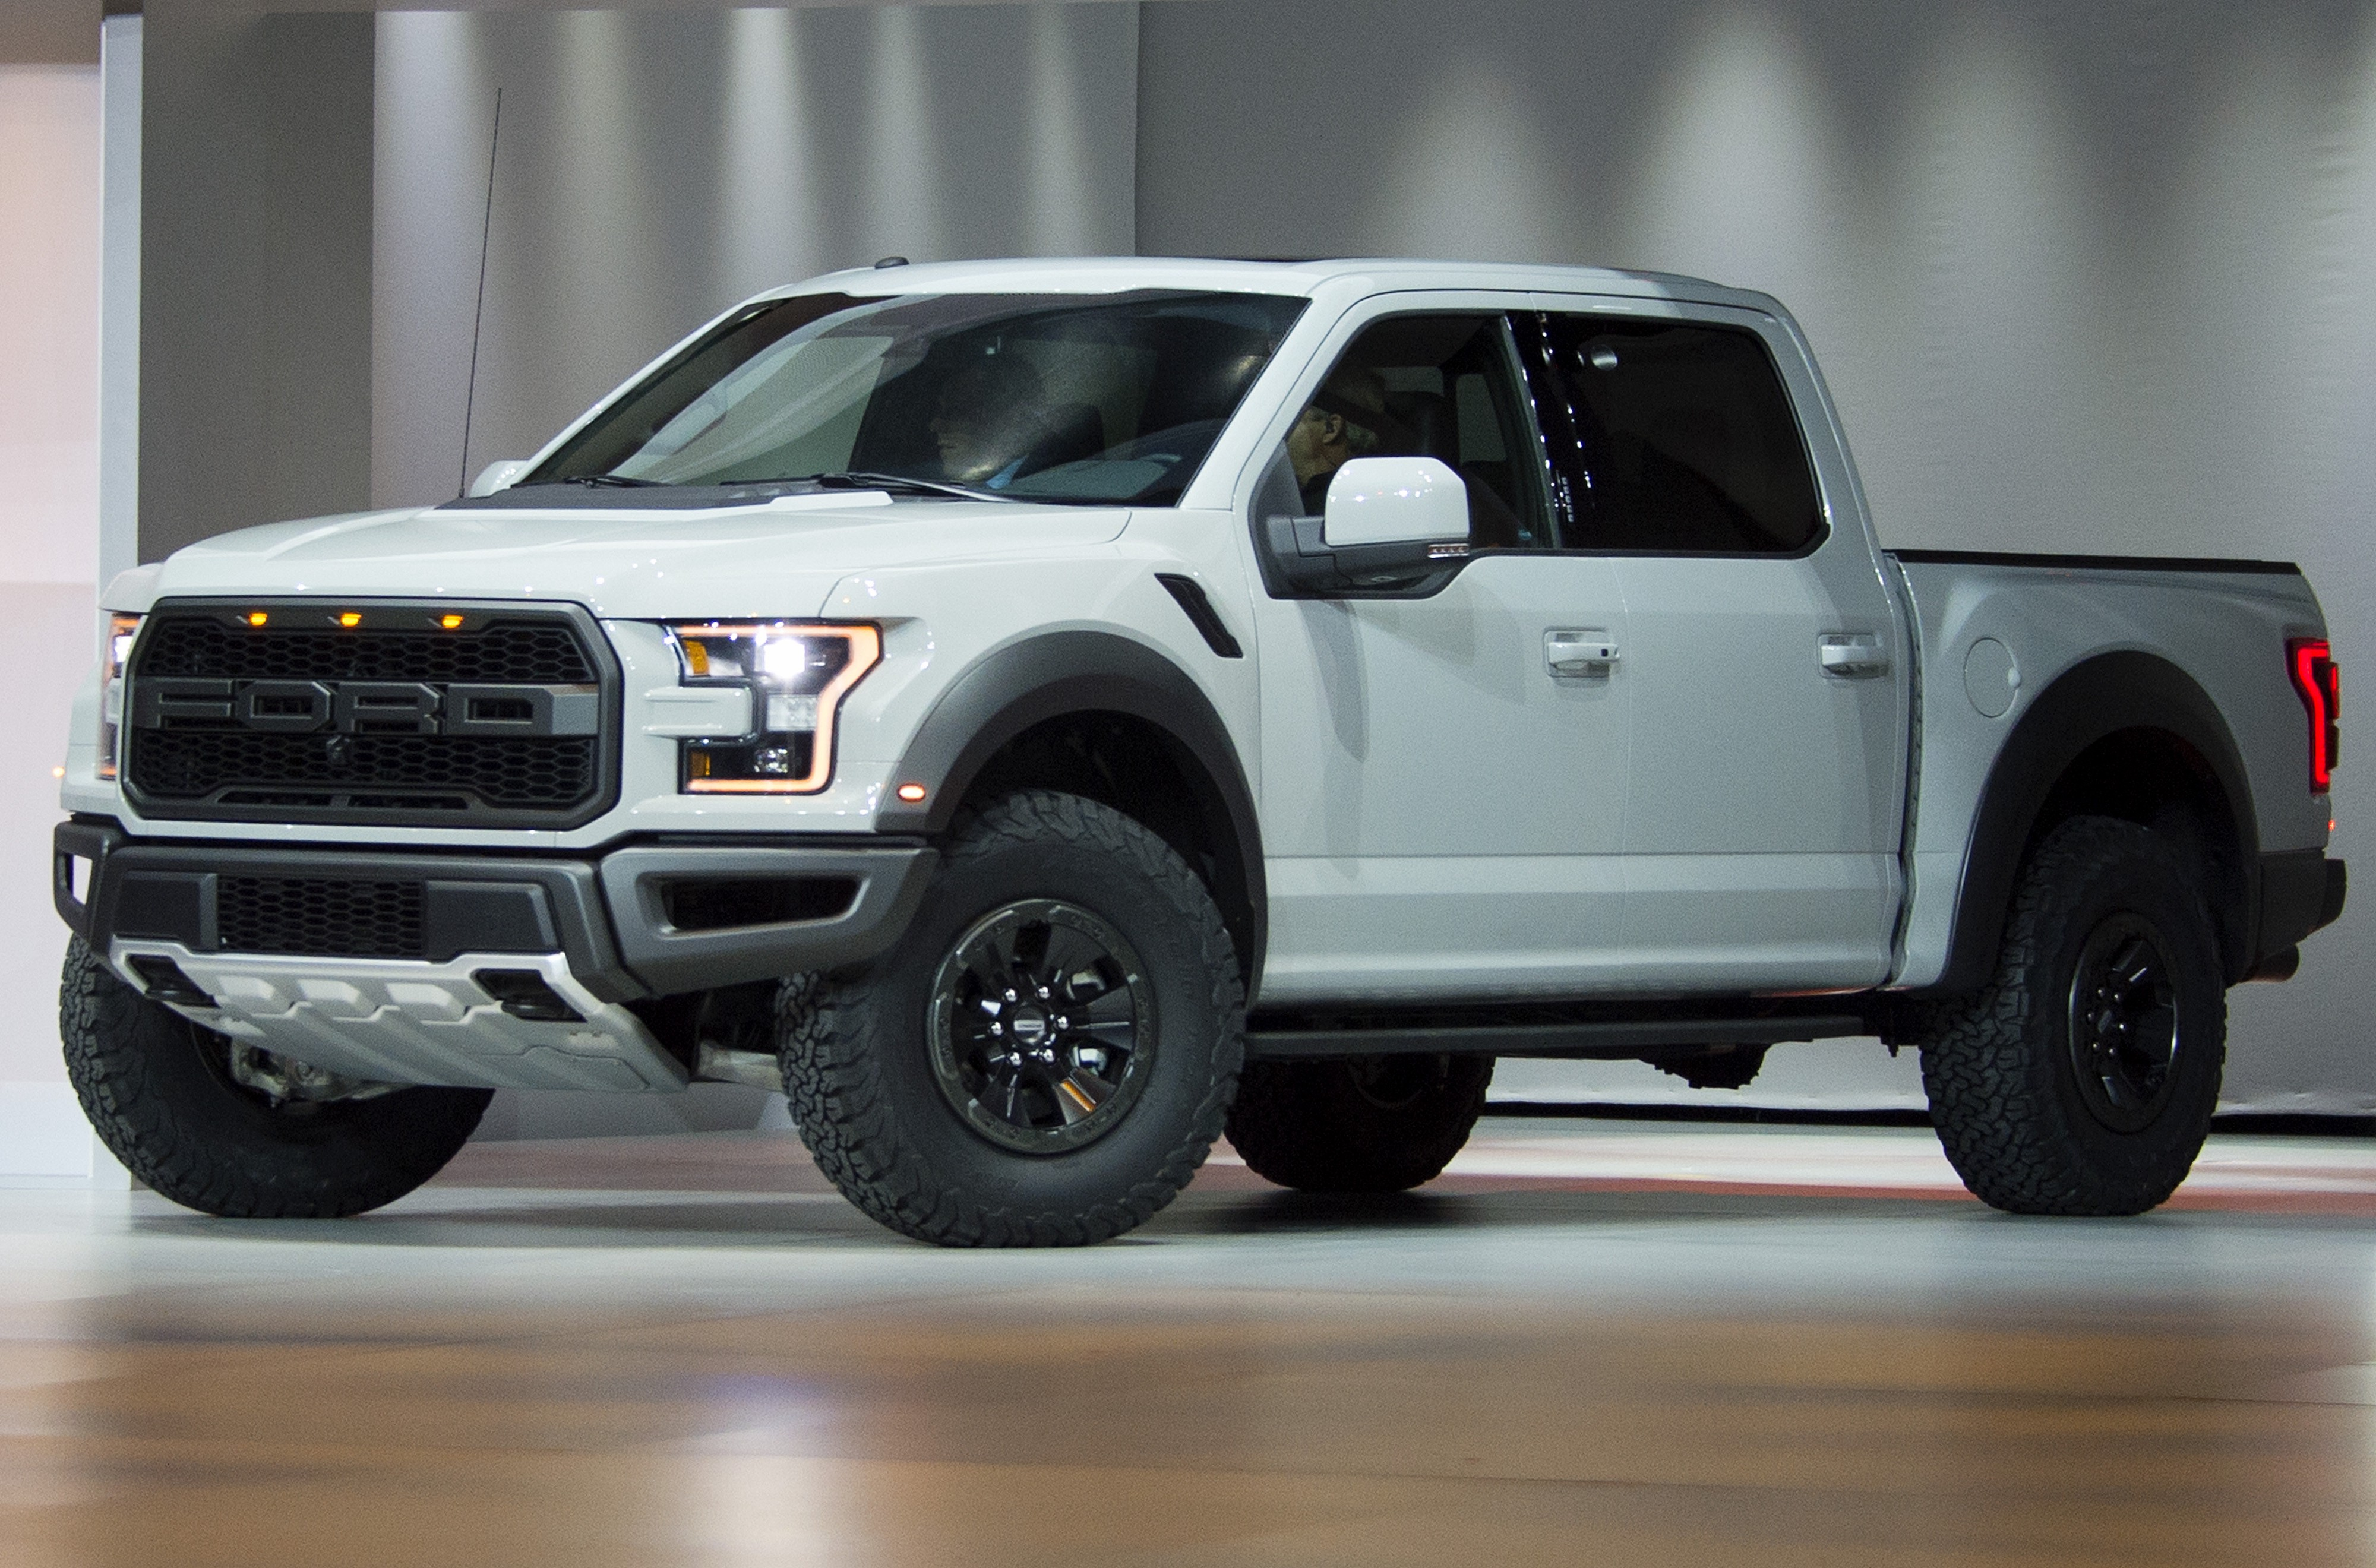 A white Ford F-150 Raptor is unveiled during the Ford press conference at the North American International Auto Show in 2016.